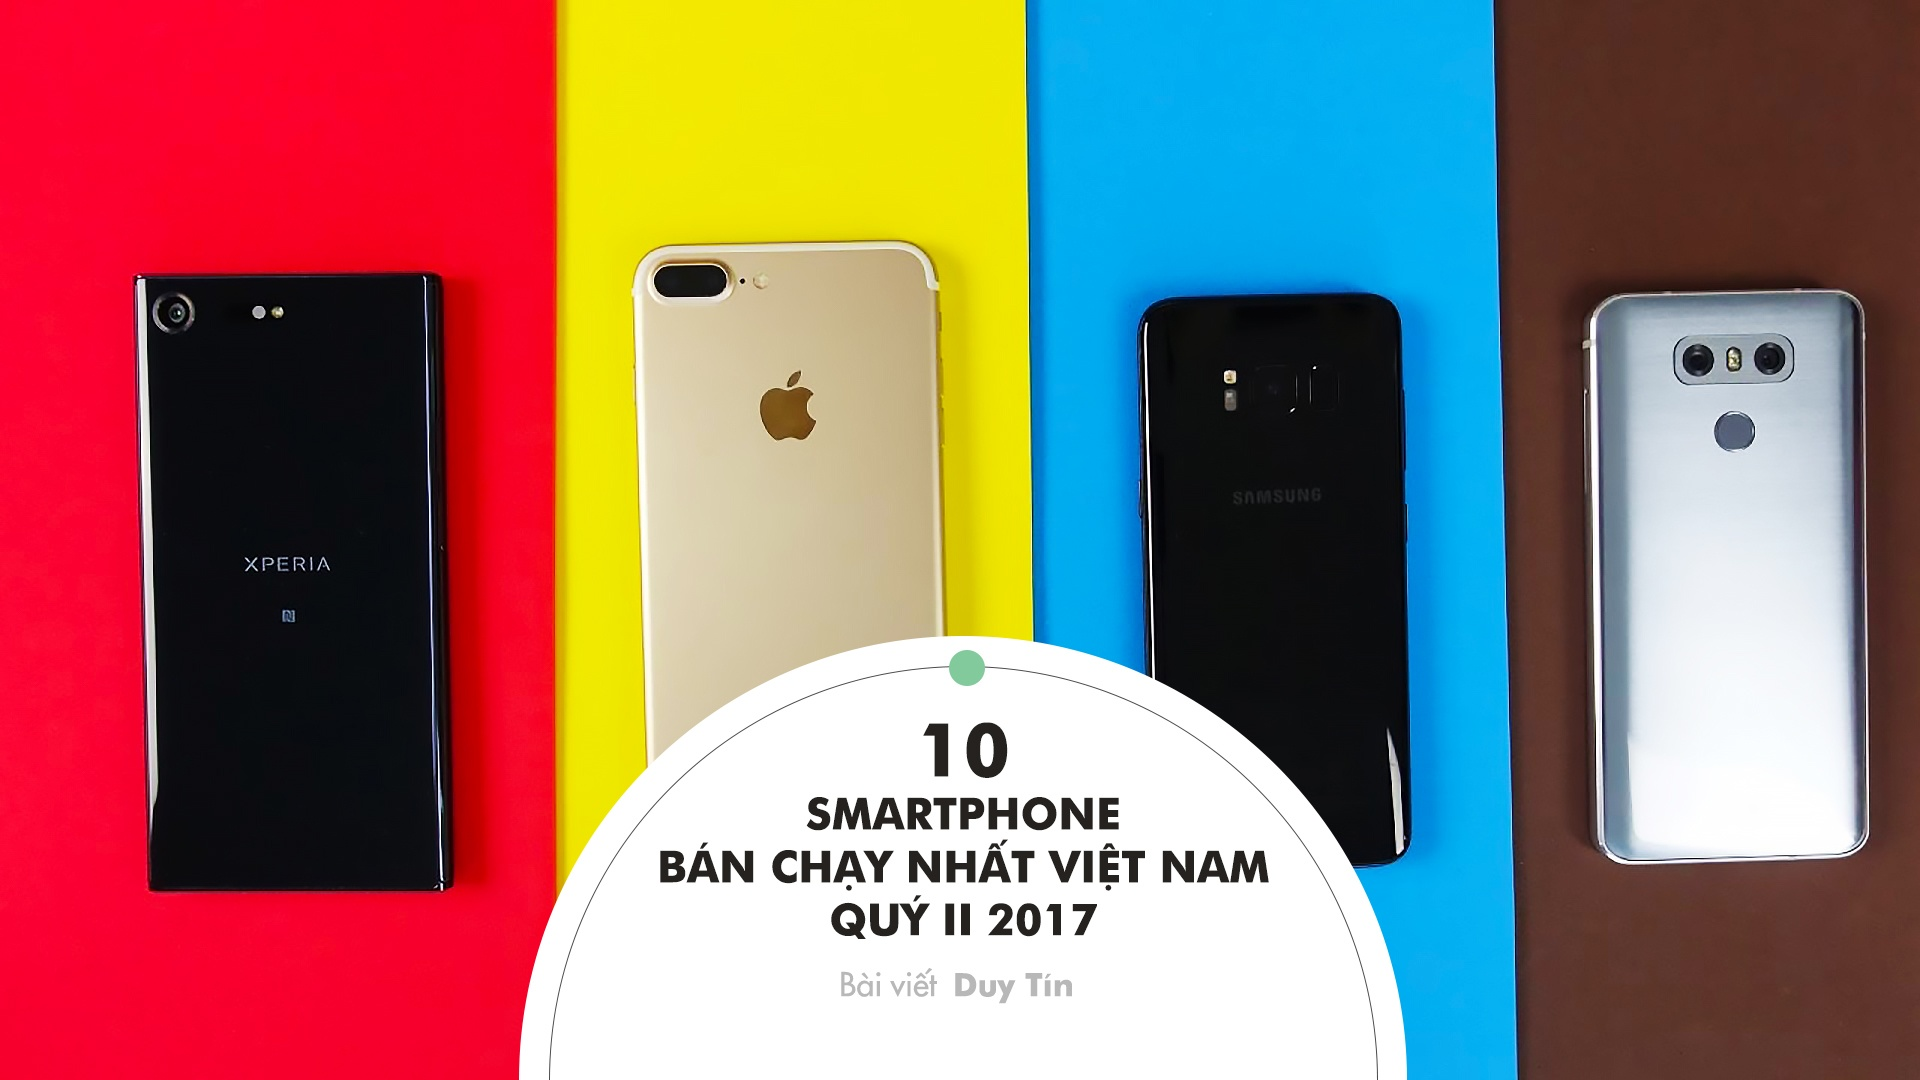 smartphone ban chay nhat anh 1